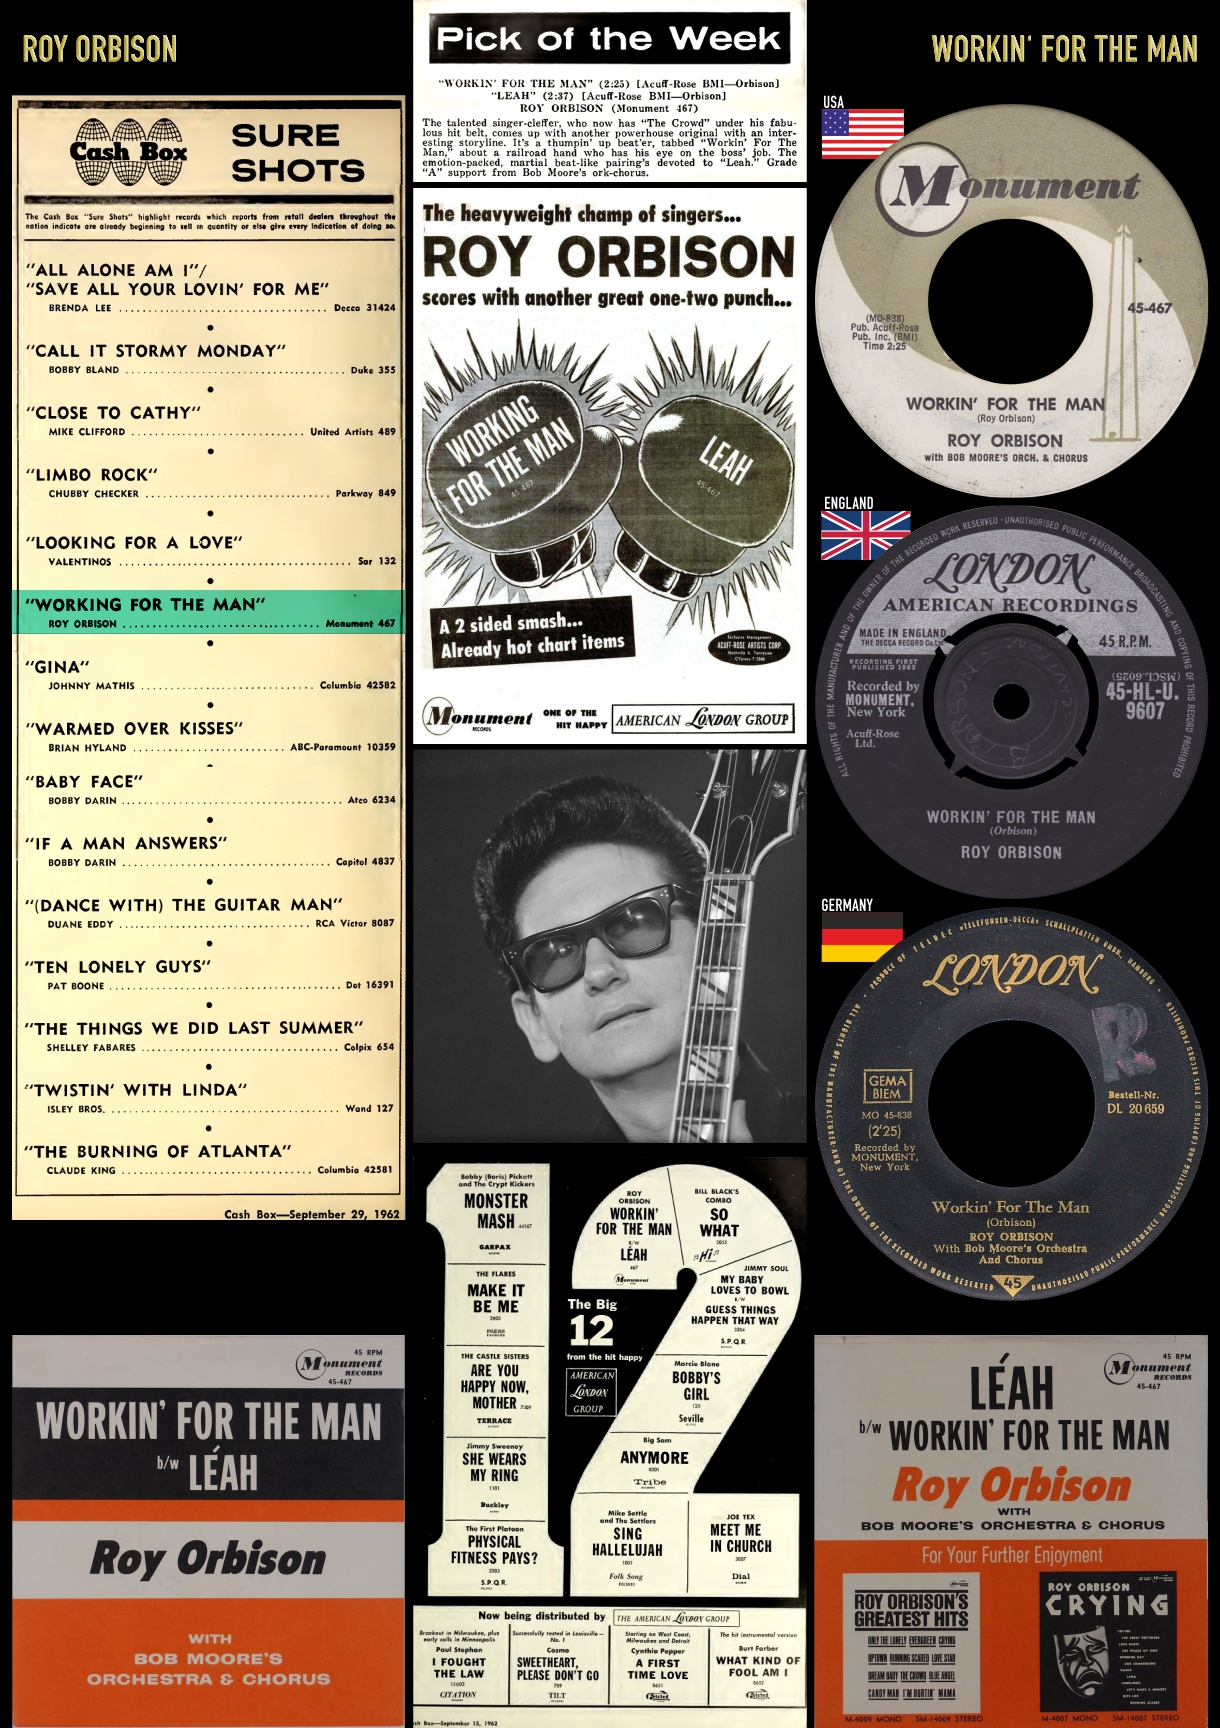 620922_Roy Orbison_Workin' For The Man